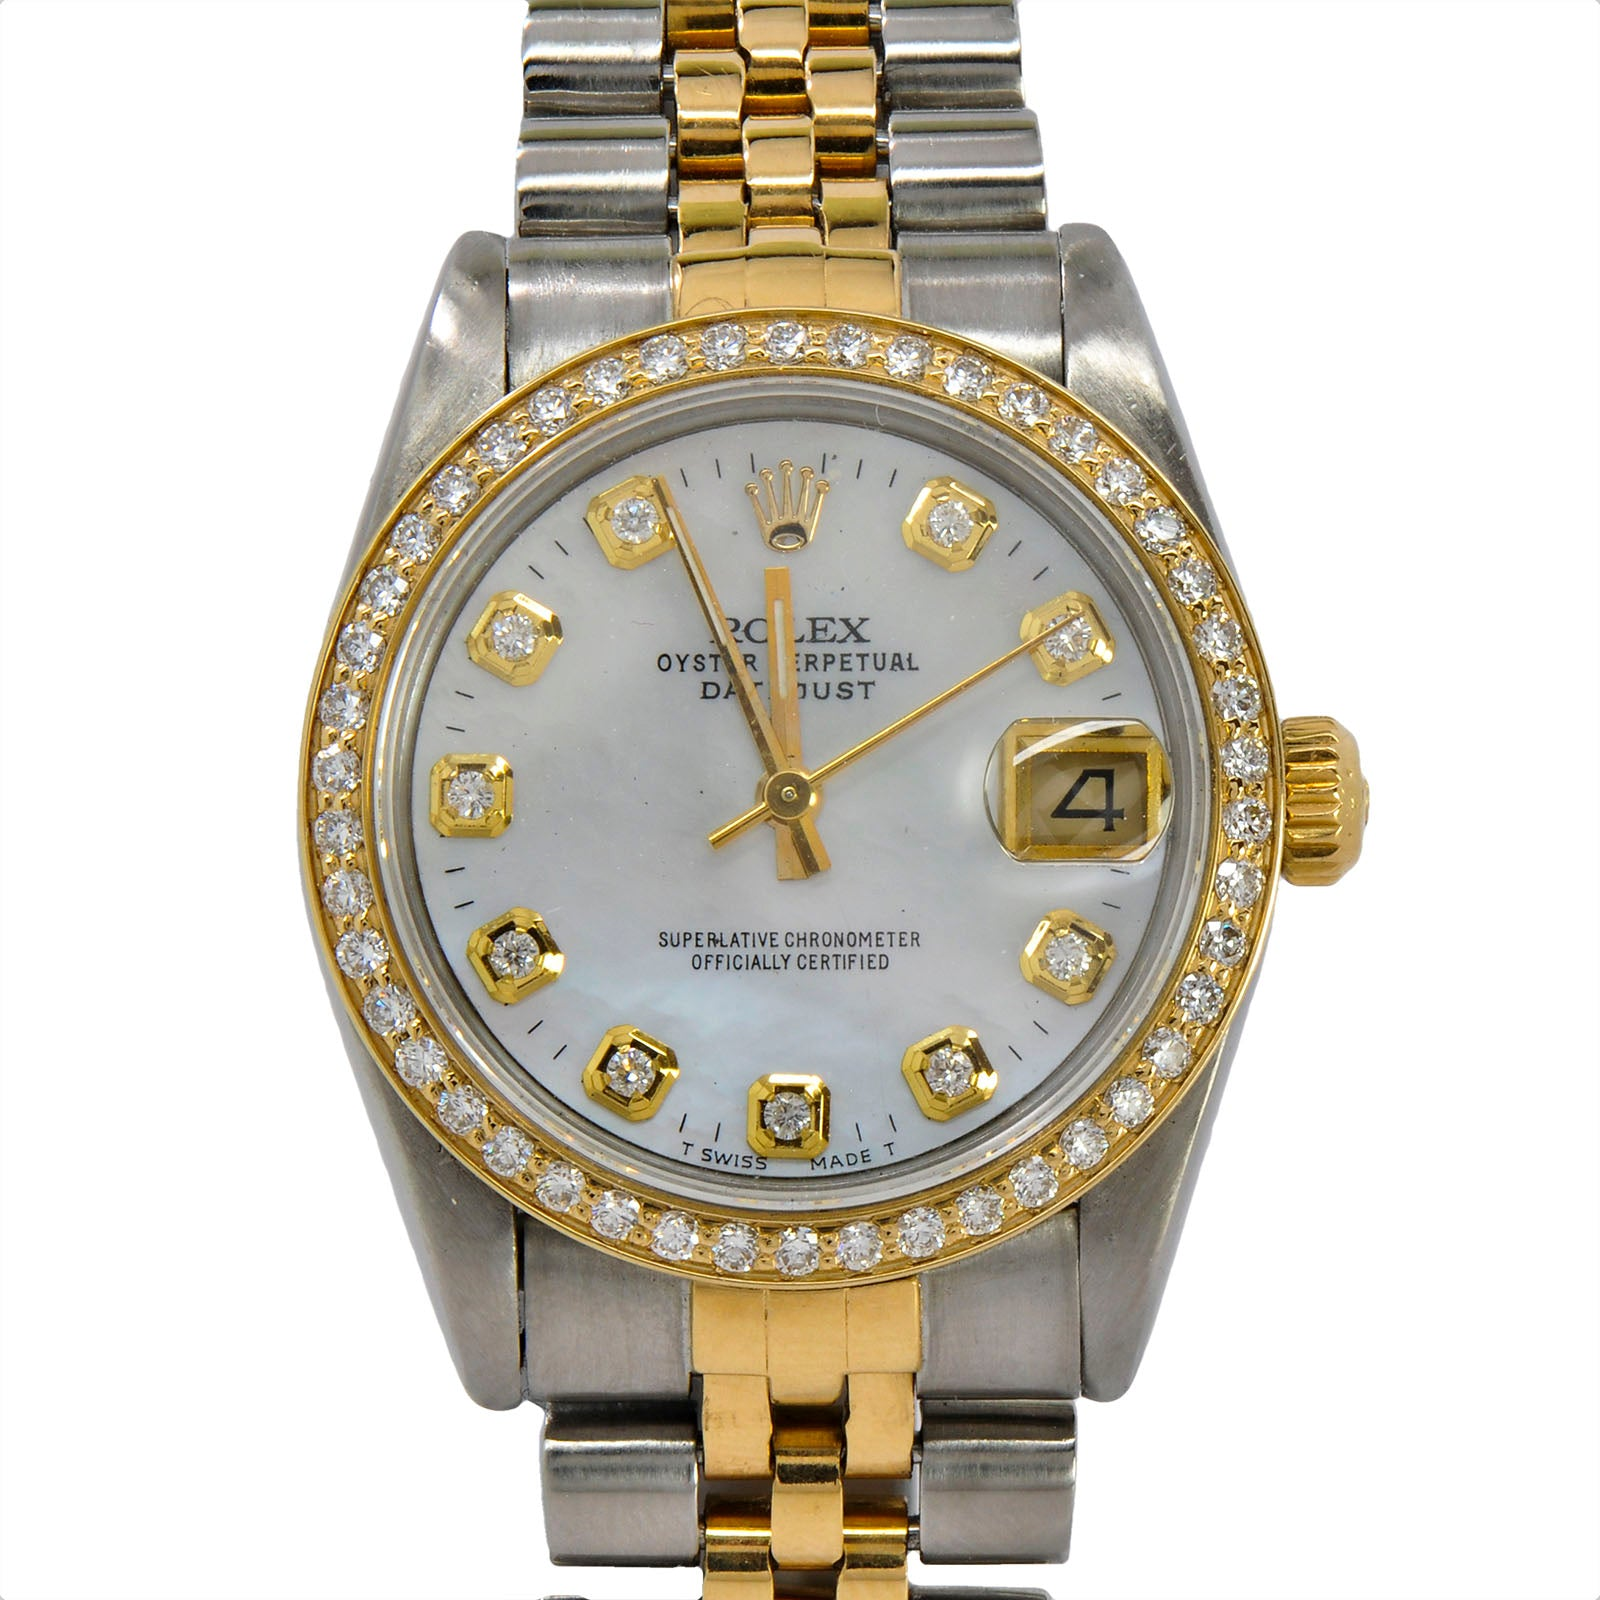 Midsized 31mm Rolex Datejust 18K/SS ref. 68273-3